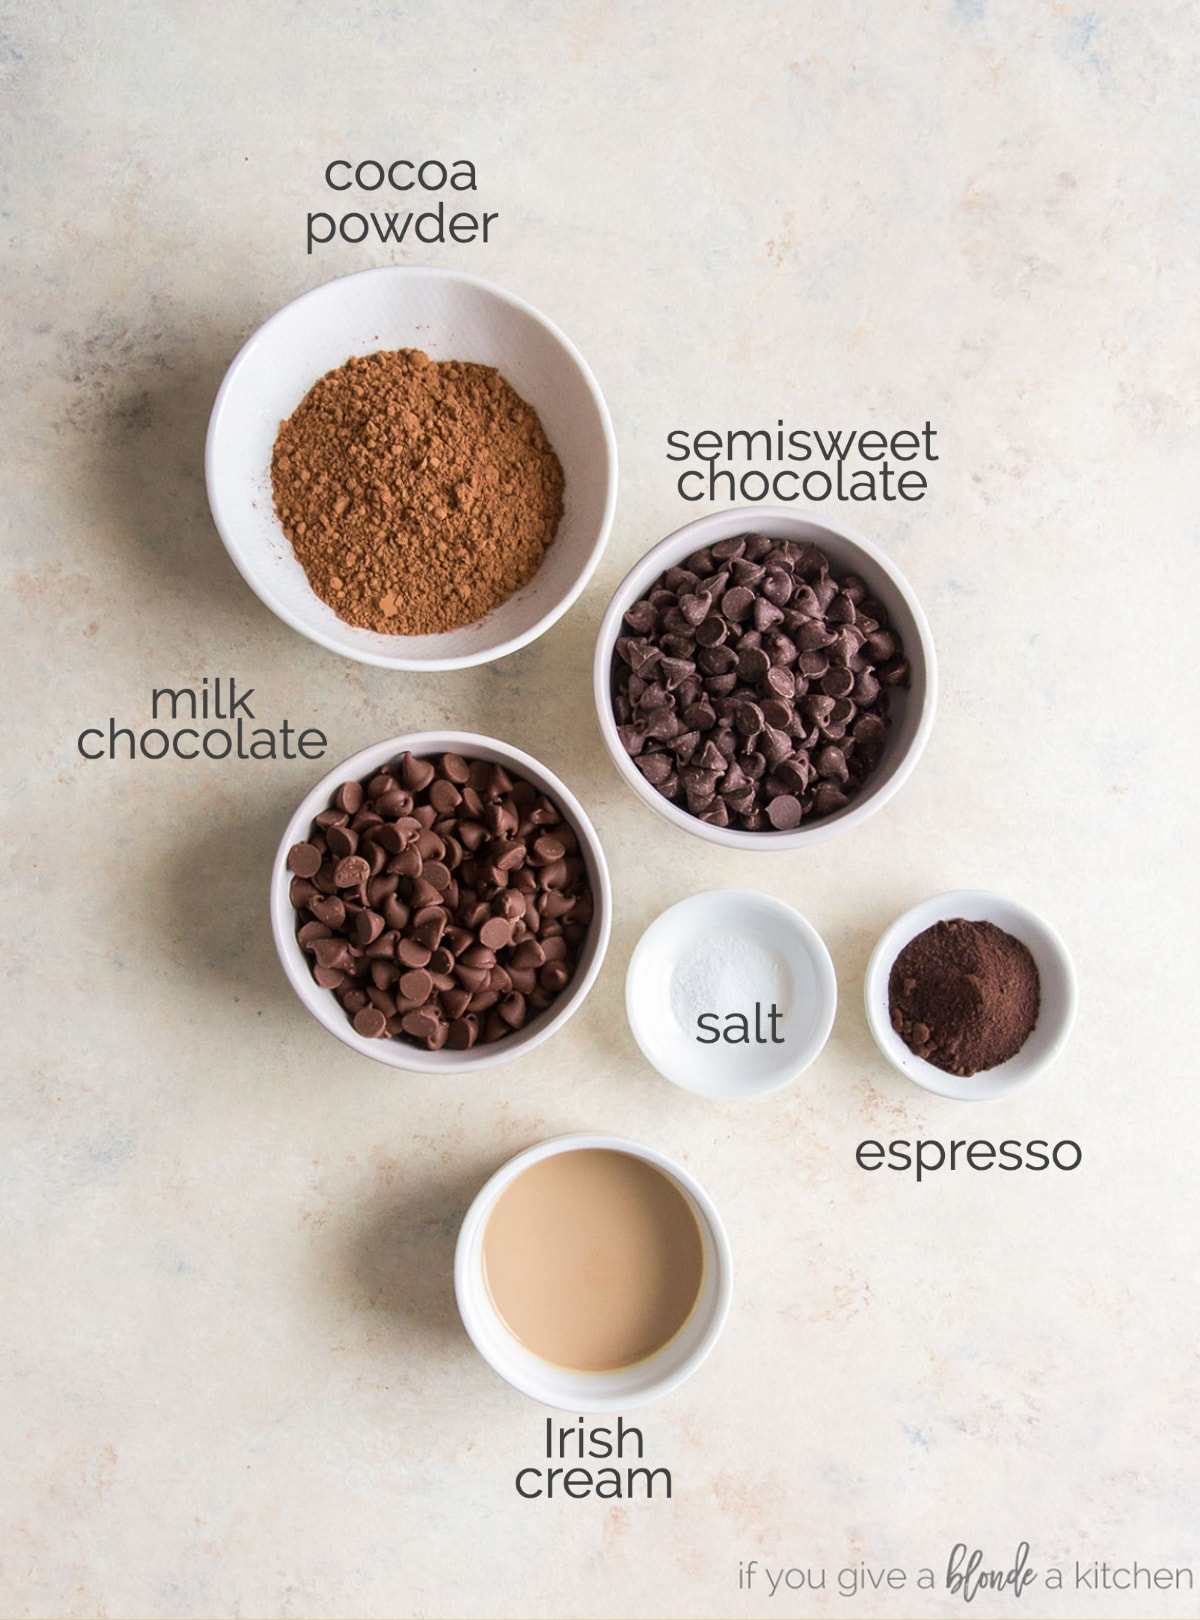 bowls of ingredients for chocolate truffles labeled with text